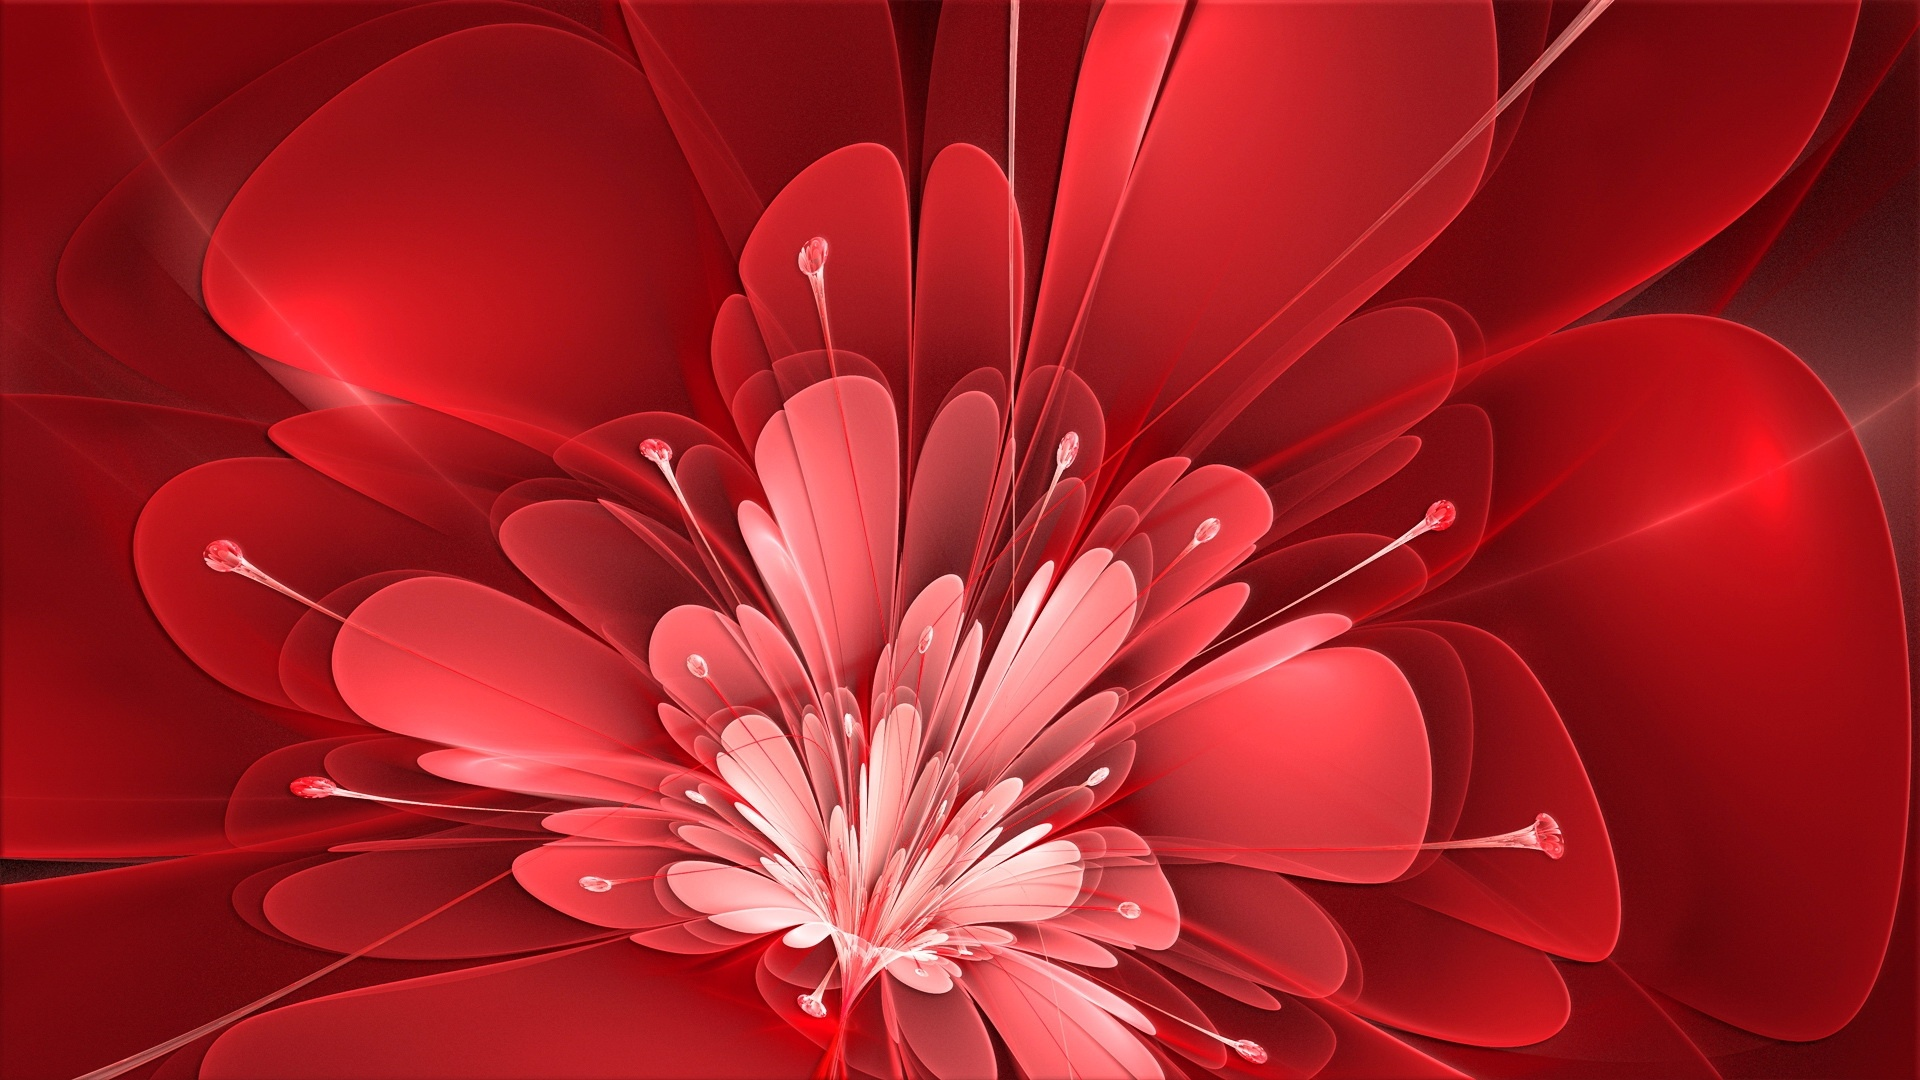 Red Flower Wallpaper and Background